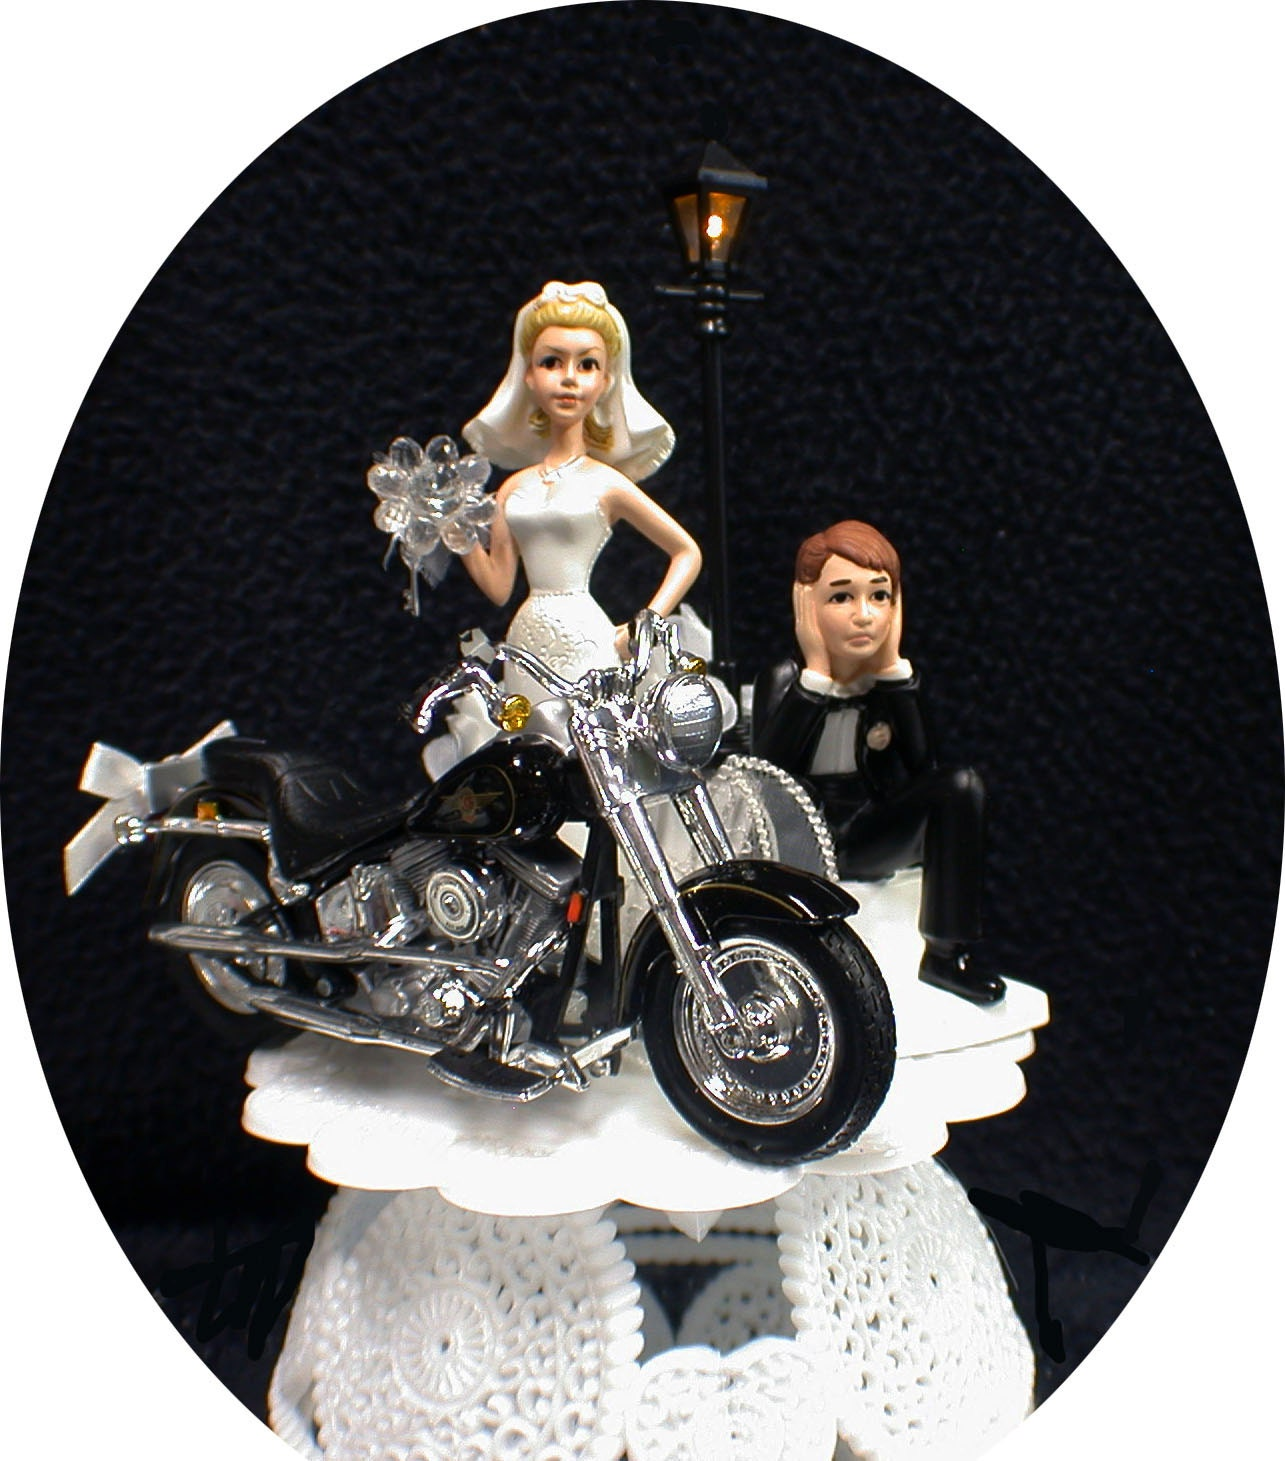 harley davidson road king wedding cake toppers wedding cake topper w die cast harley davidson motorcycle 15070